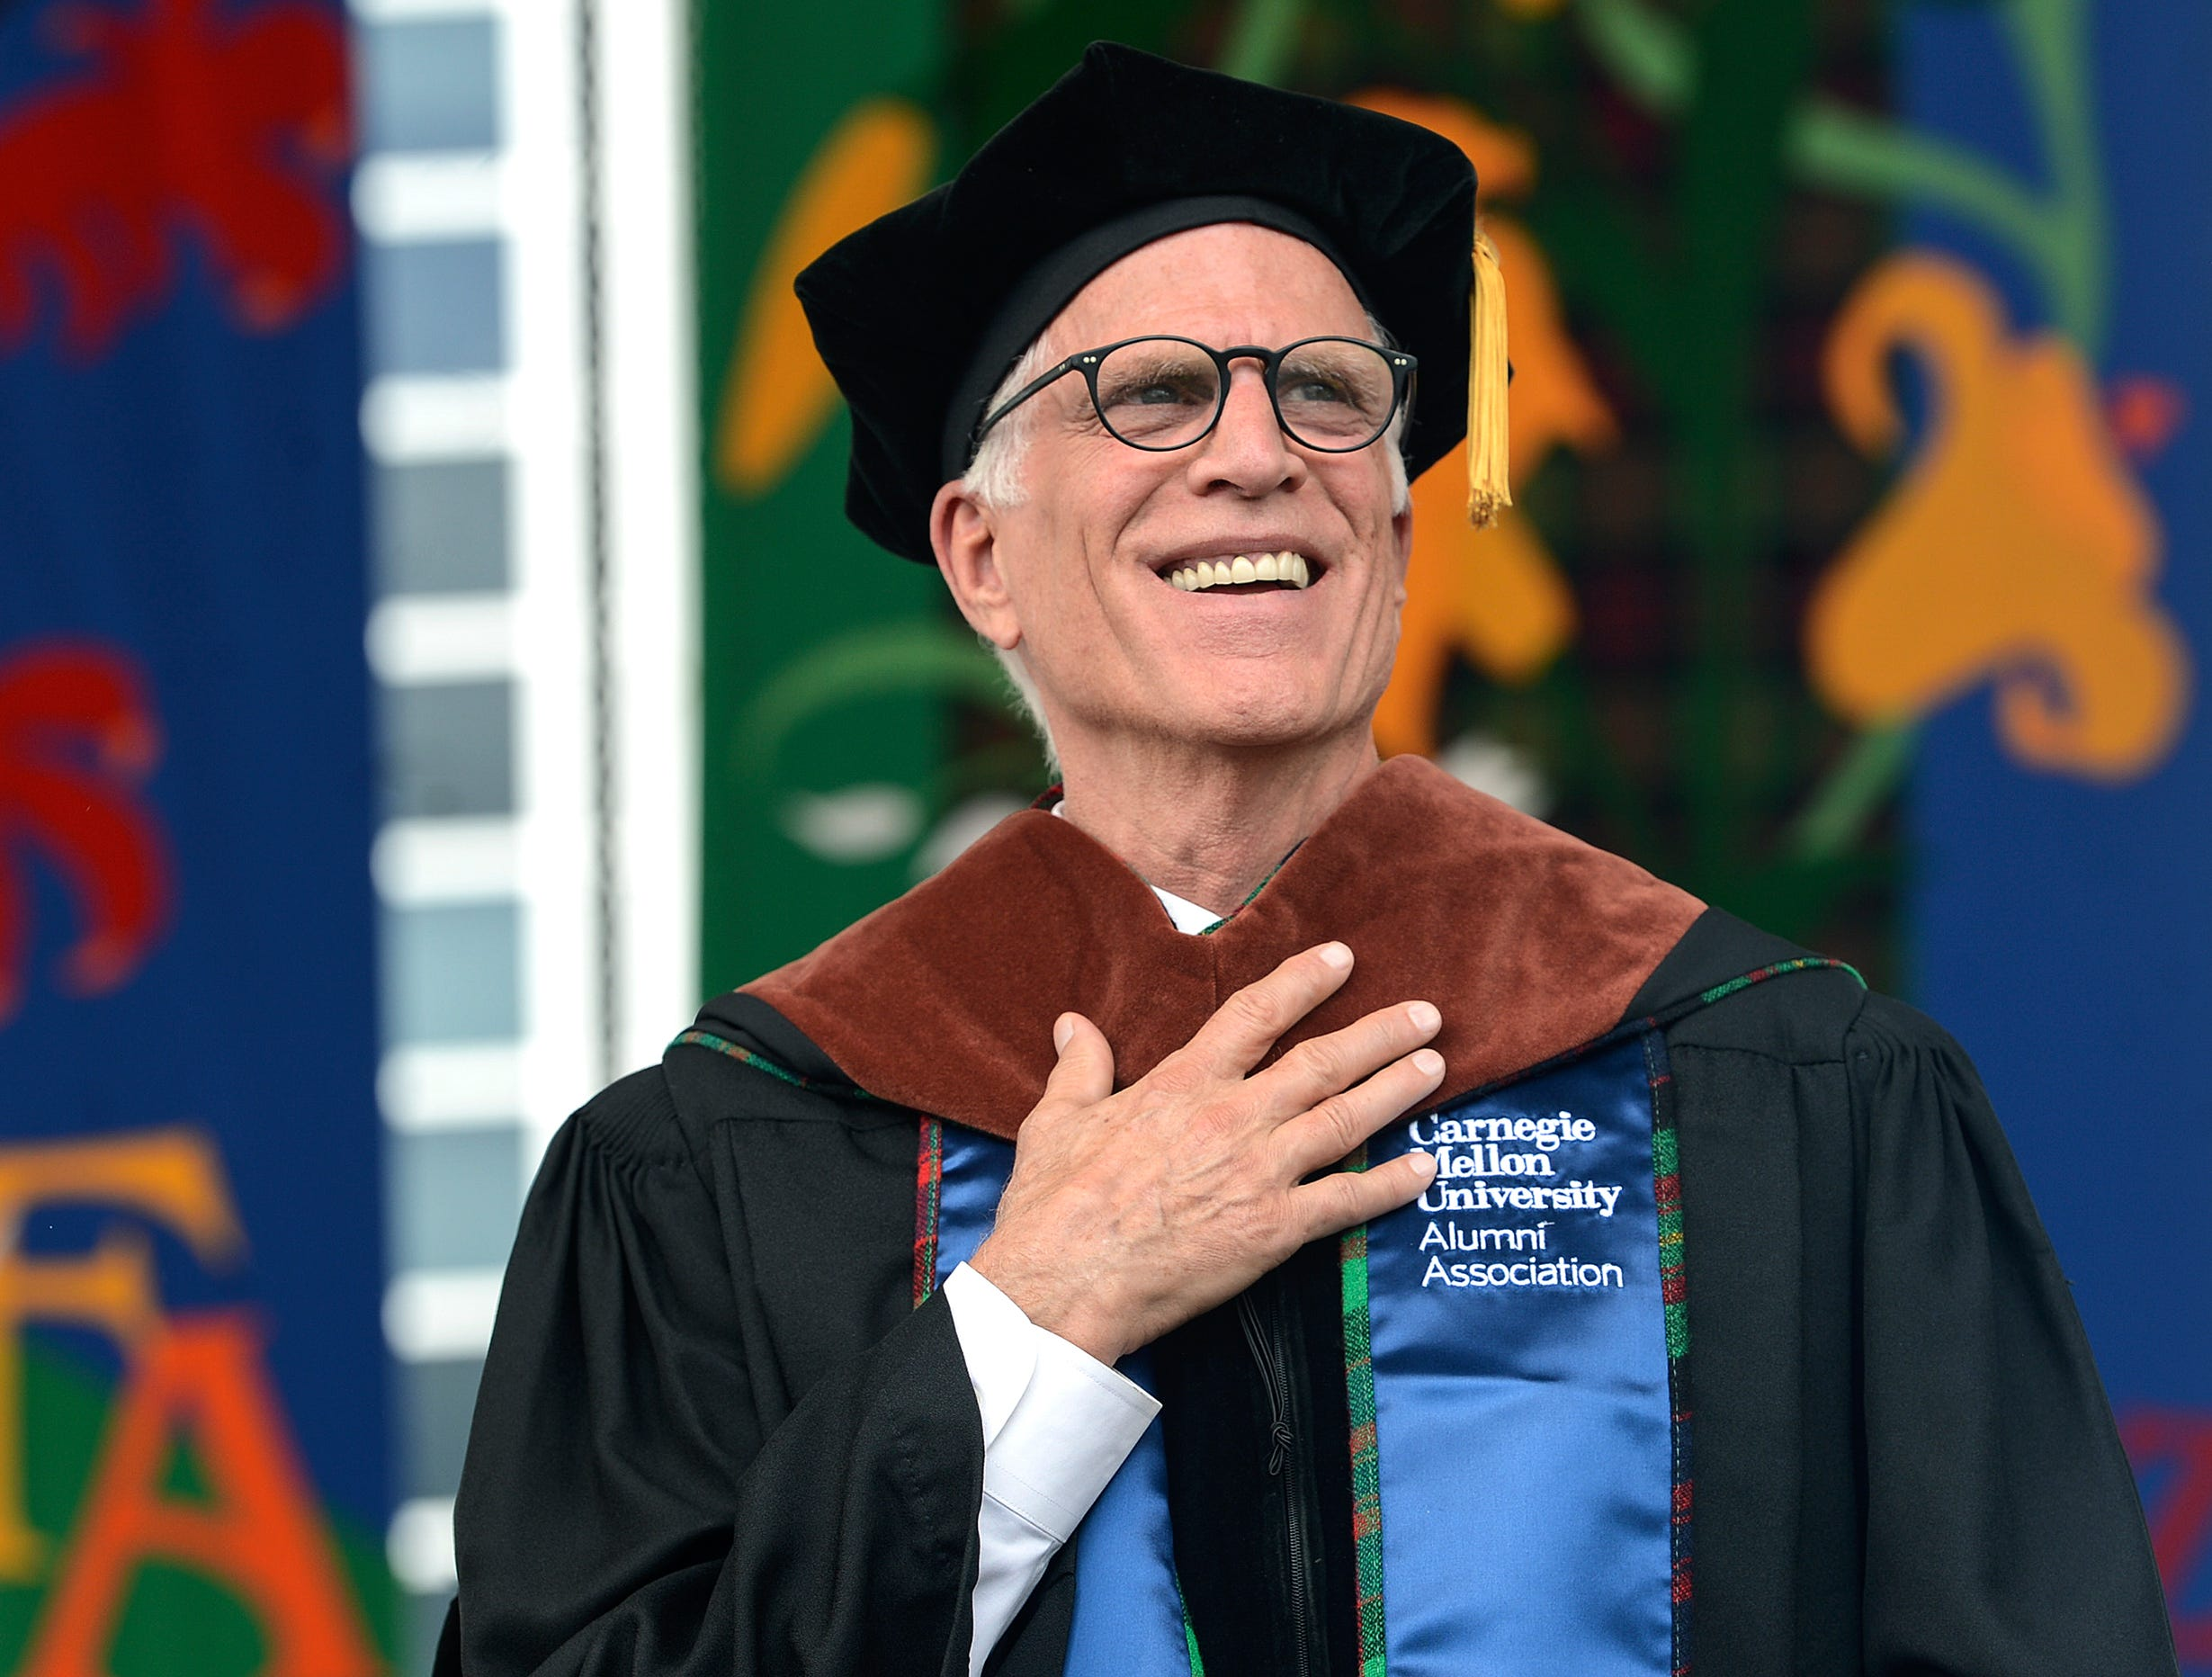 May 20: Ted Danson, a Carnegie Mellon graduate, smiles as he is given an honorary doctorate at the Carnegie Mellon University commencement ceremony.